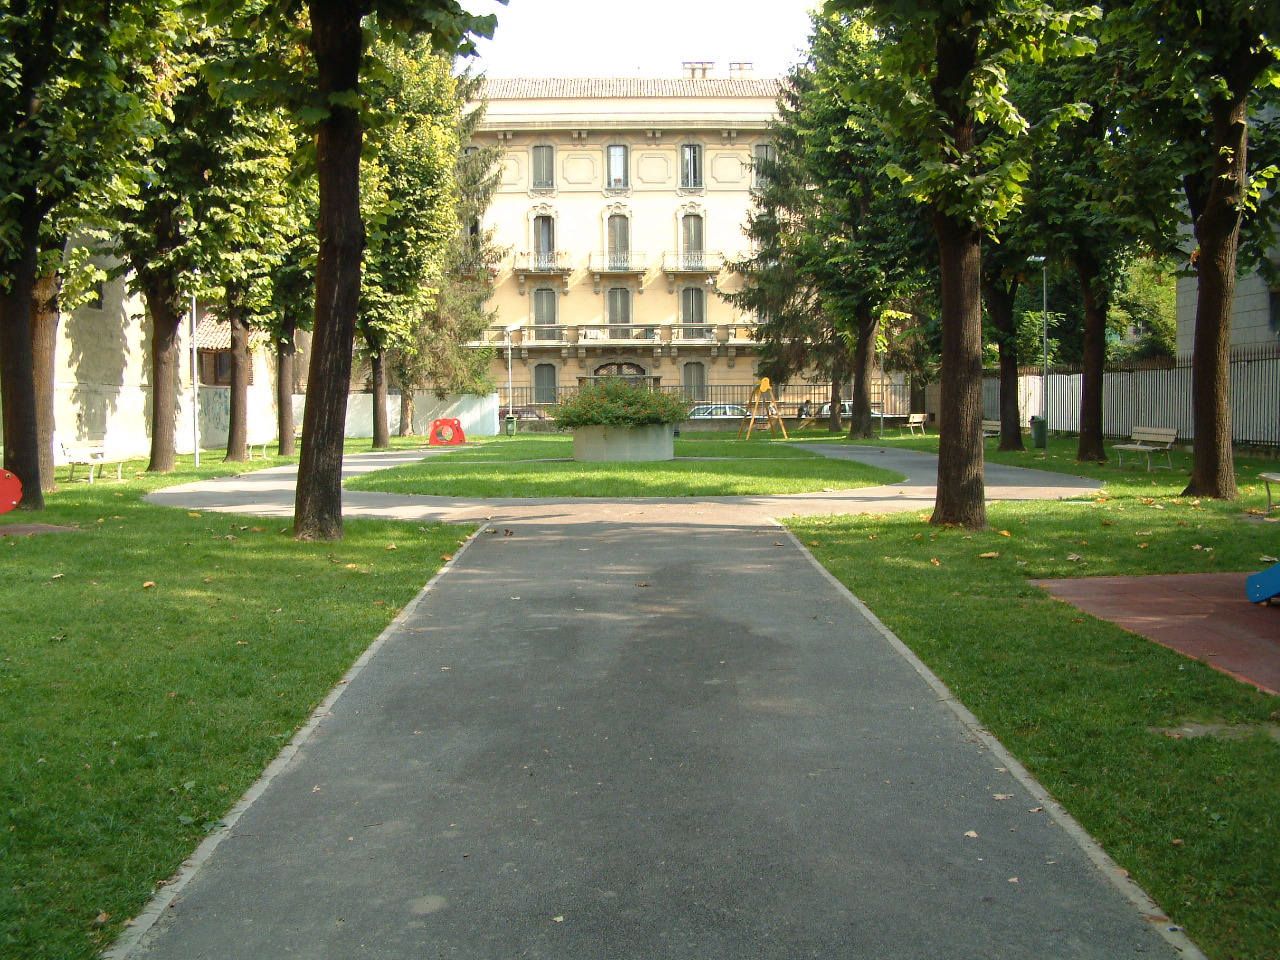 PARCO MOSCHINI